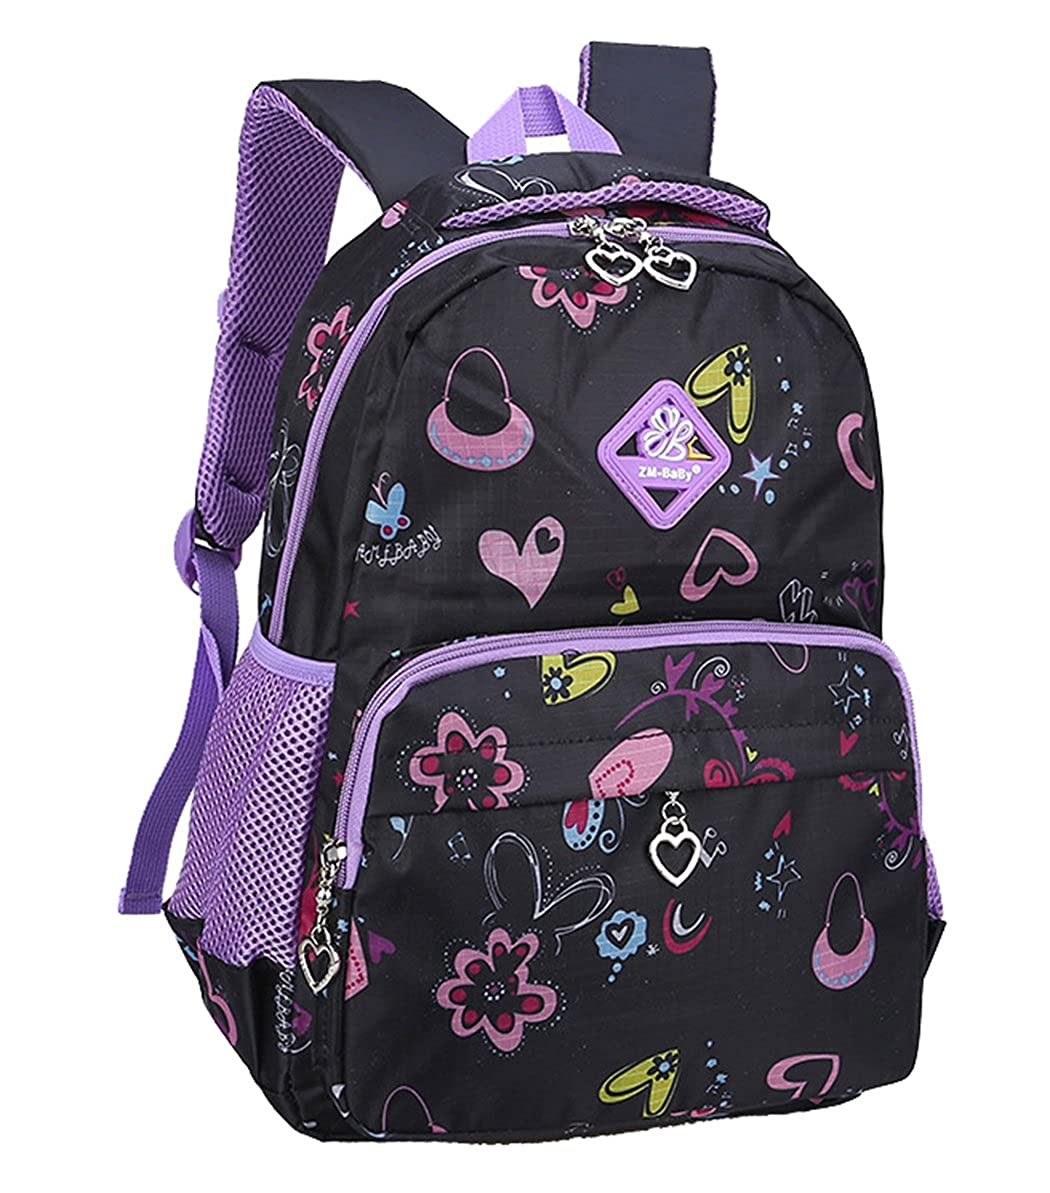 23599dcdad11 Girly Backpacks Online India- Fenix Toulouse Handball